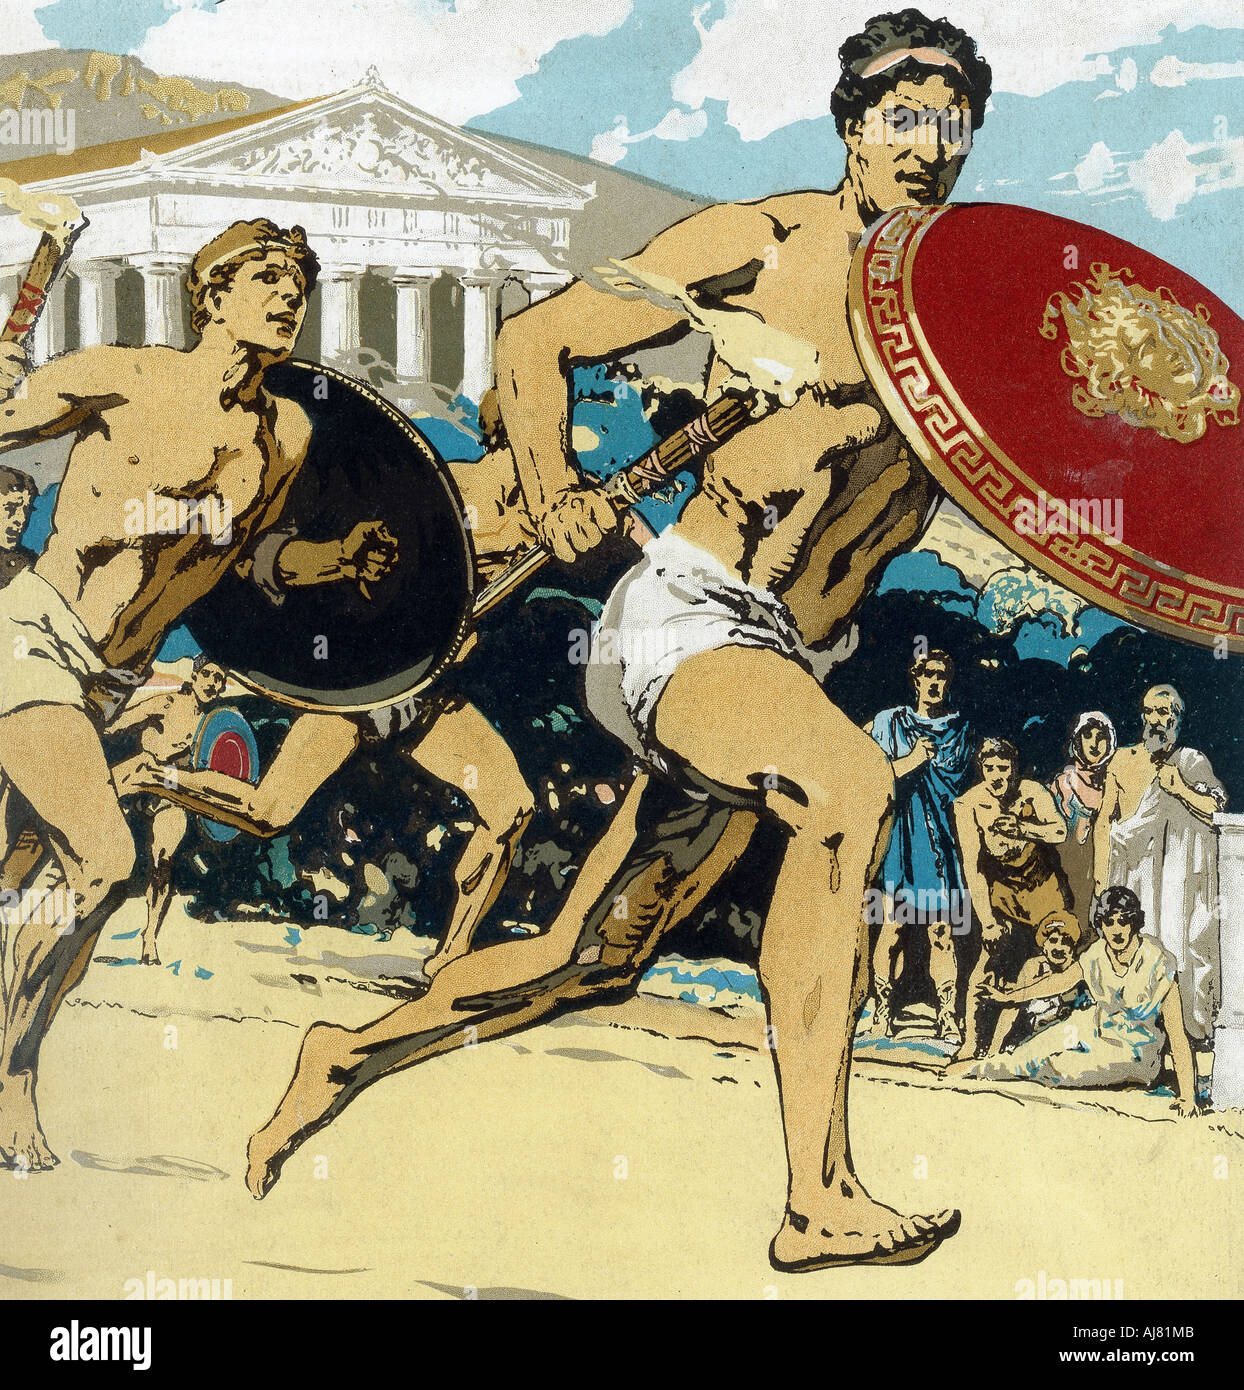 Ancient Olympic Games High Resolution Stock Photography and Images - Alamy